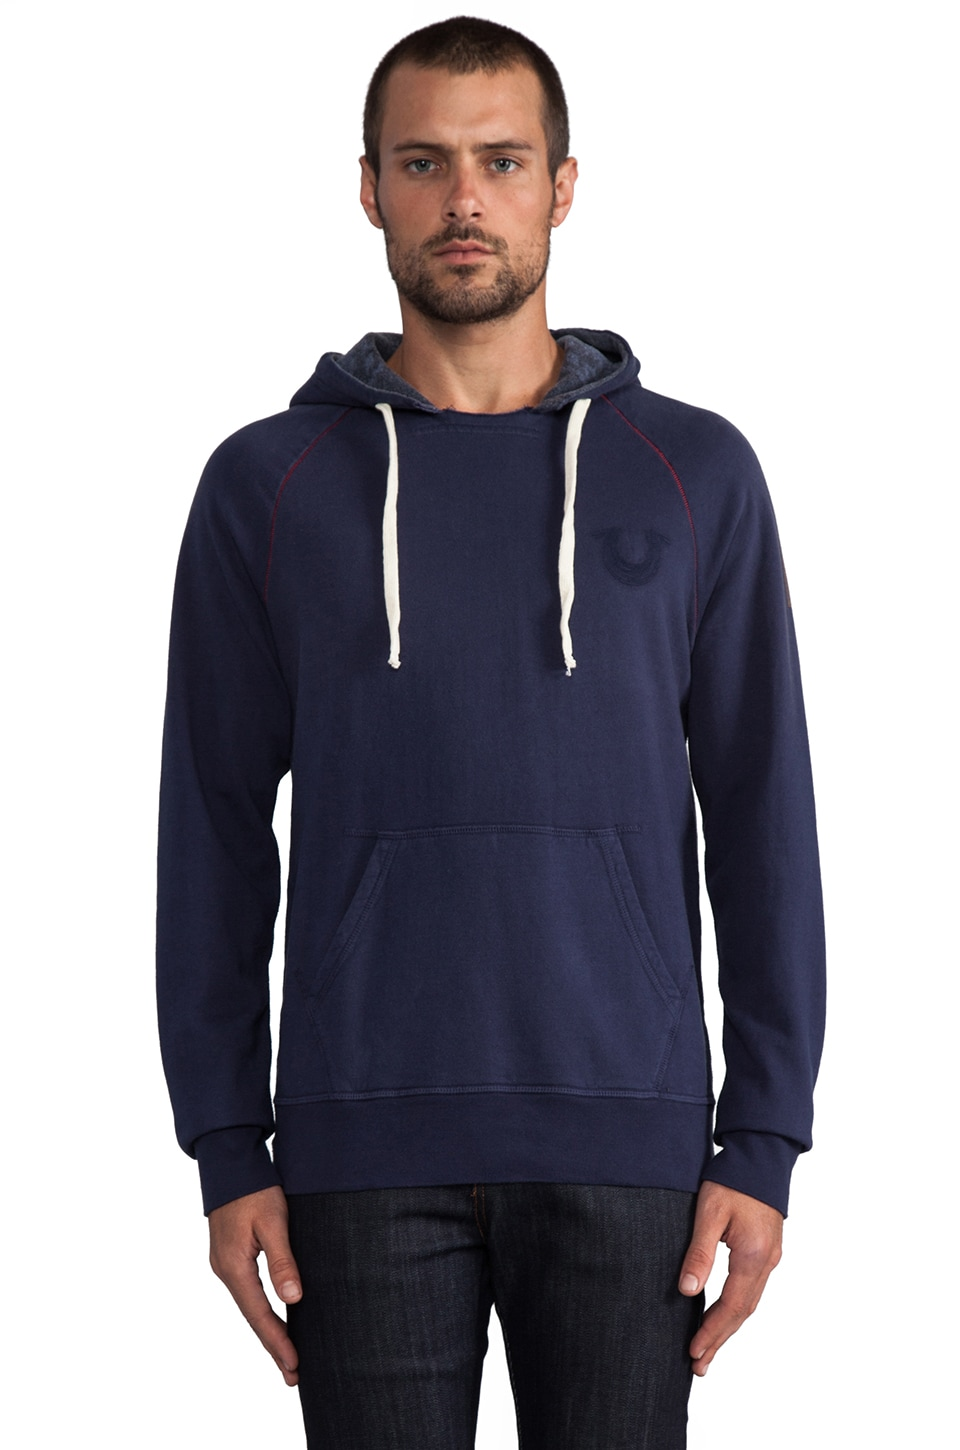 True Religion Branded Hoodie in Dark Navy